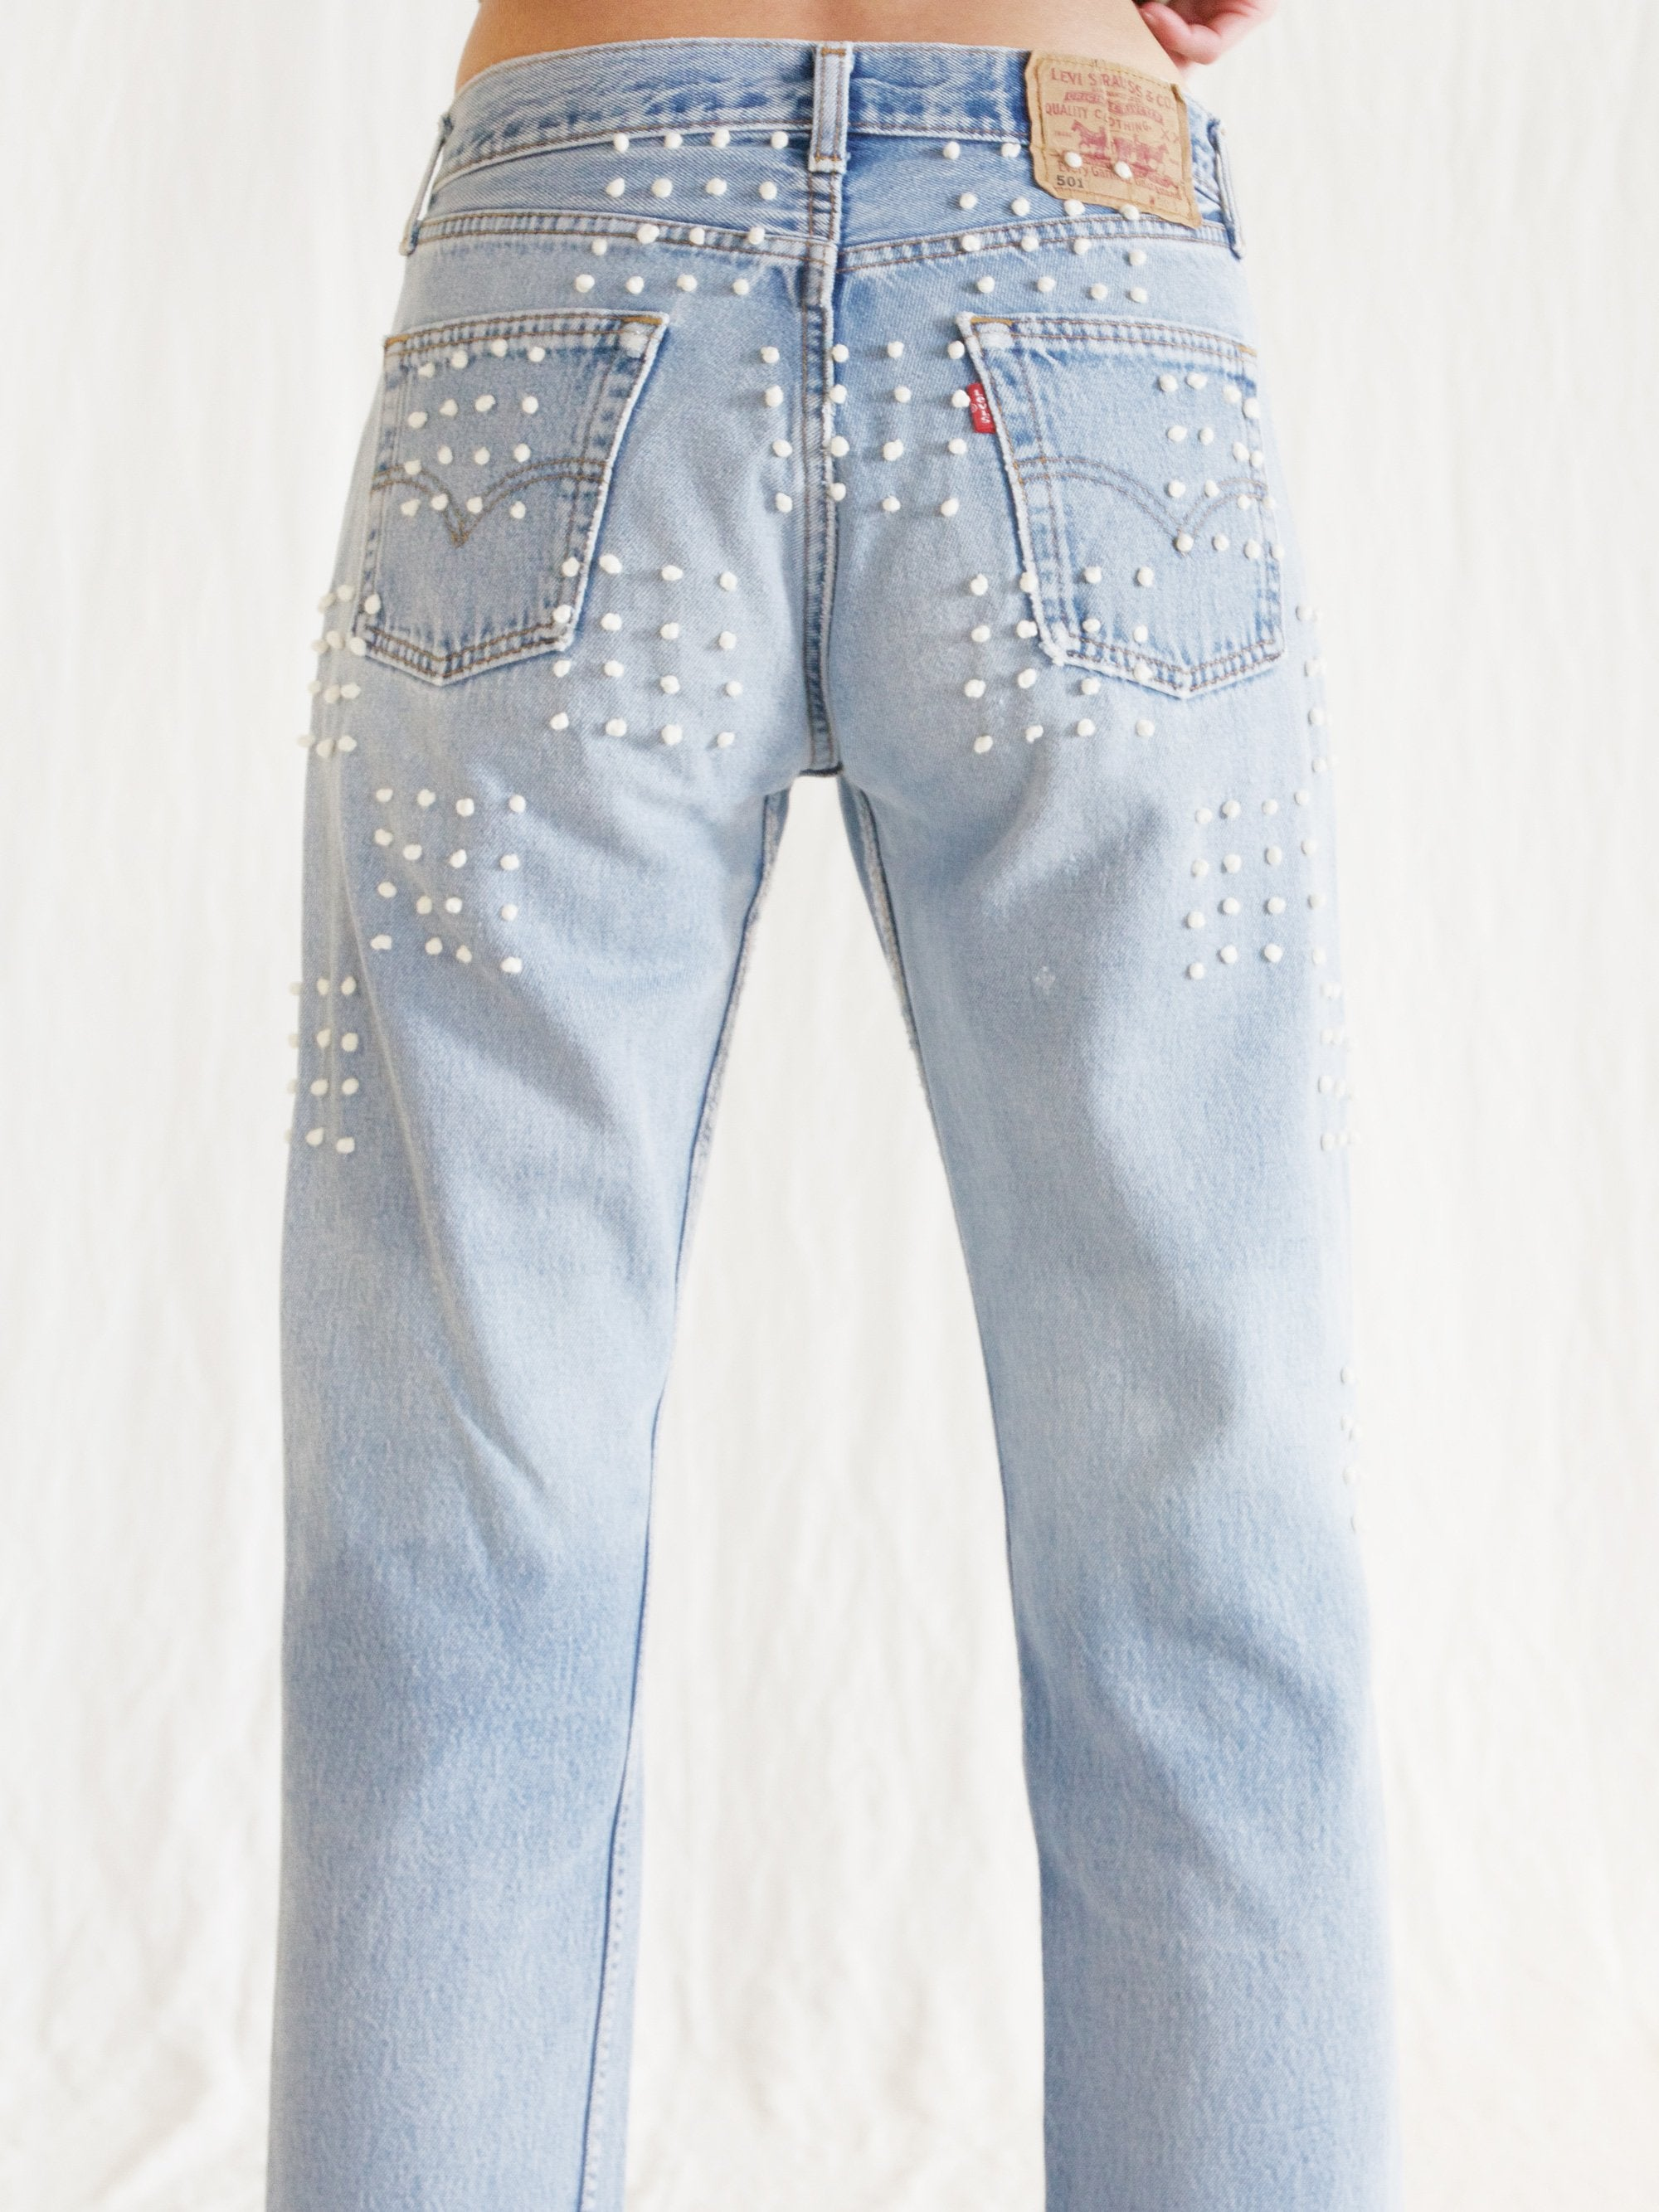 Namu Shop - B Sides Hand Tied French Knot Checker Board Jean